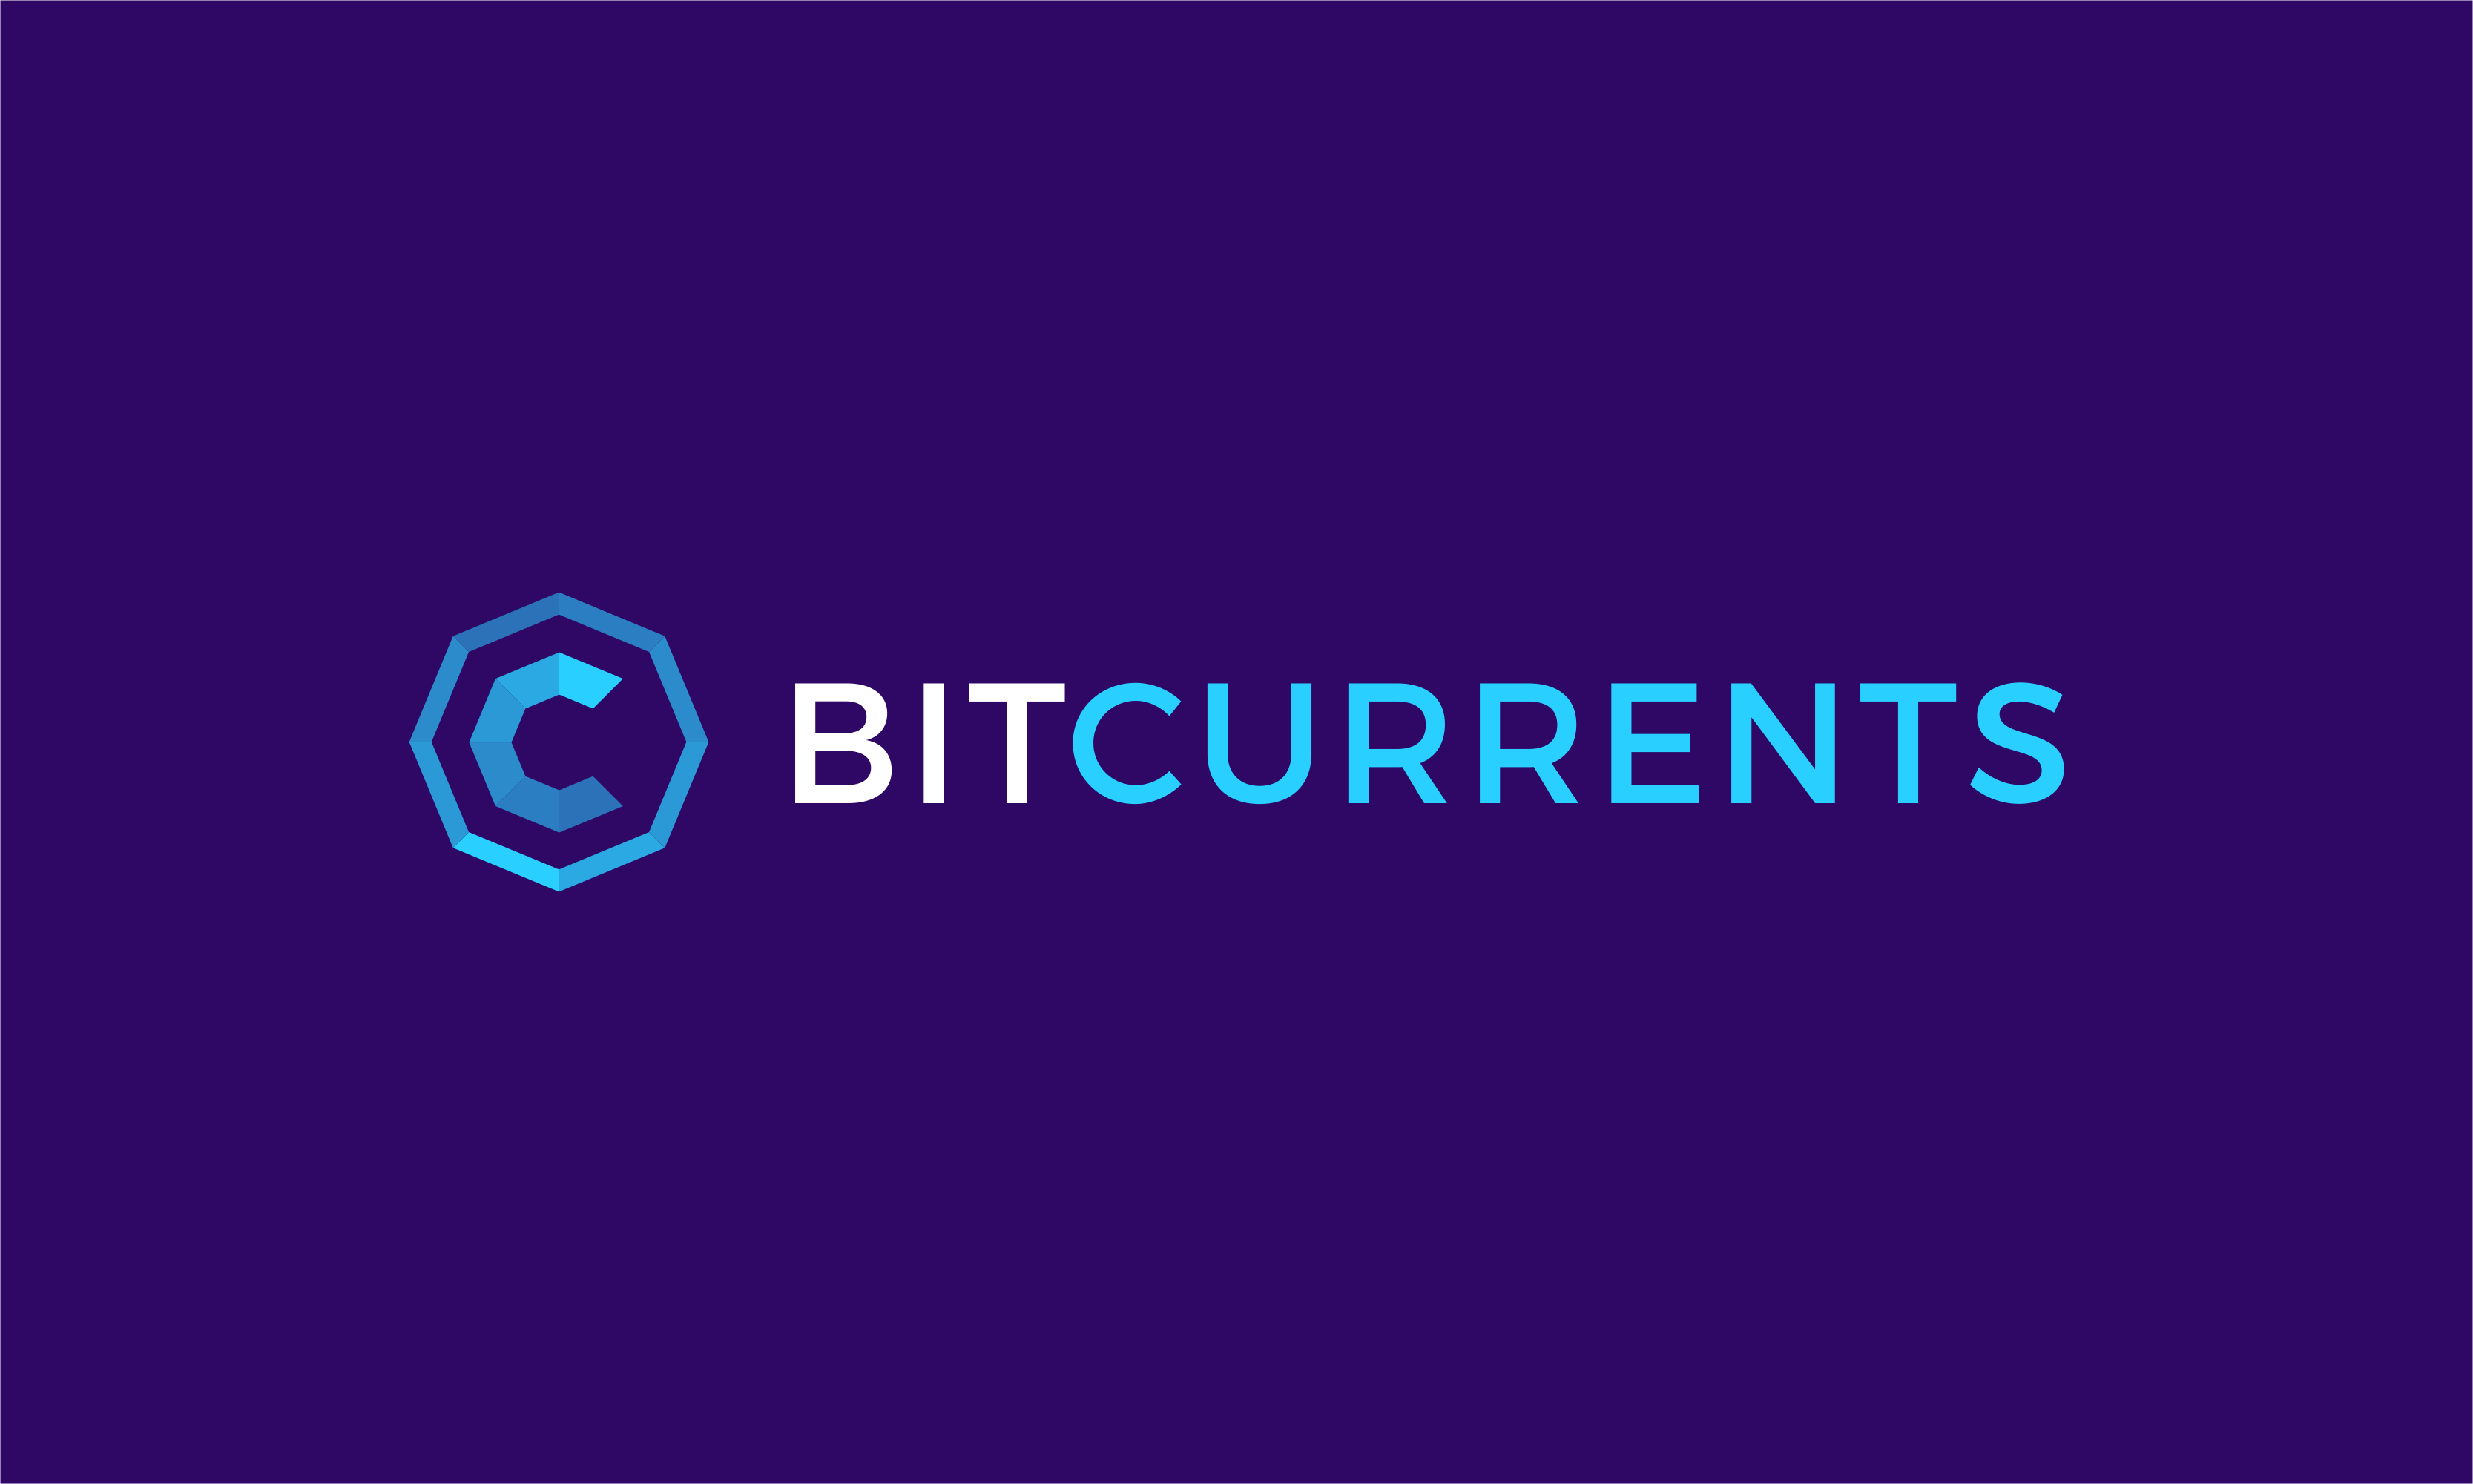 Bitcurrents